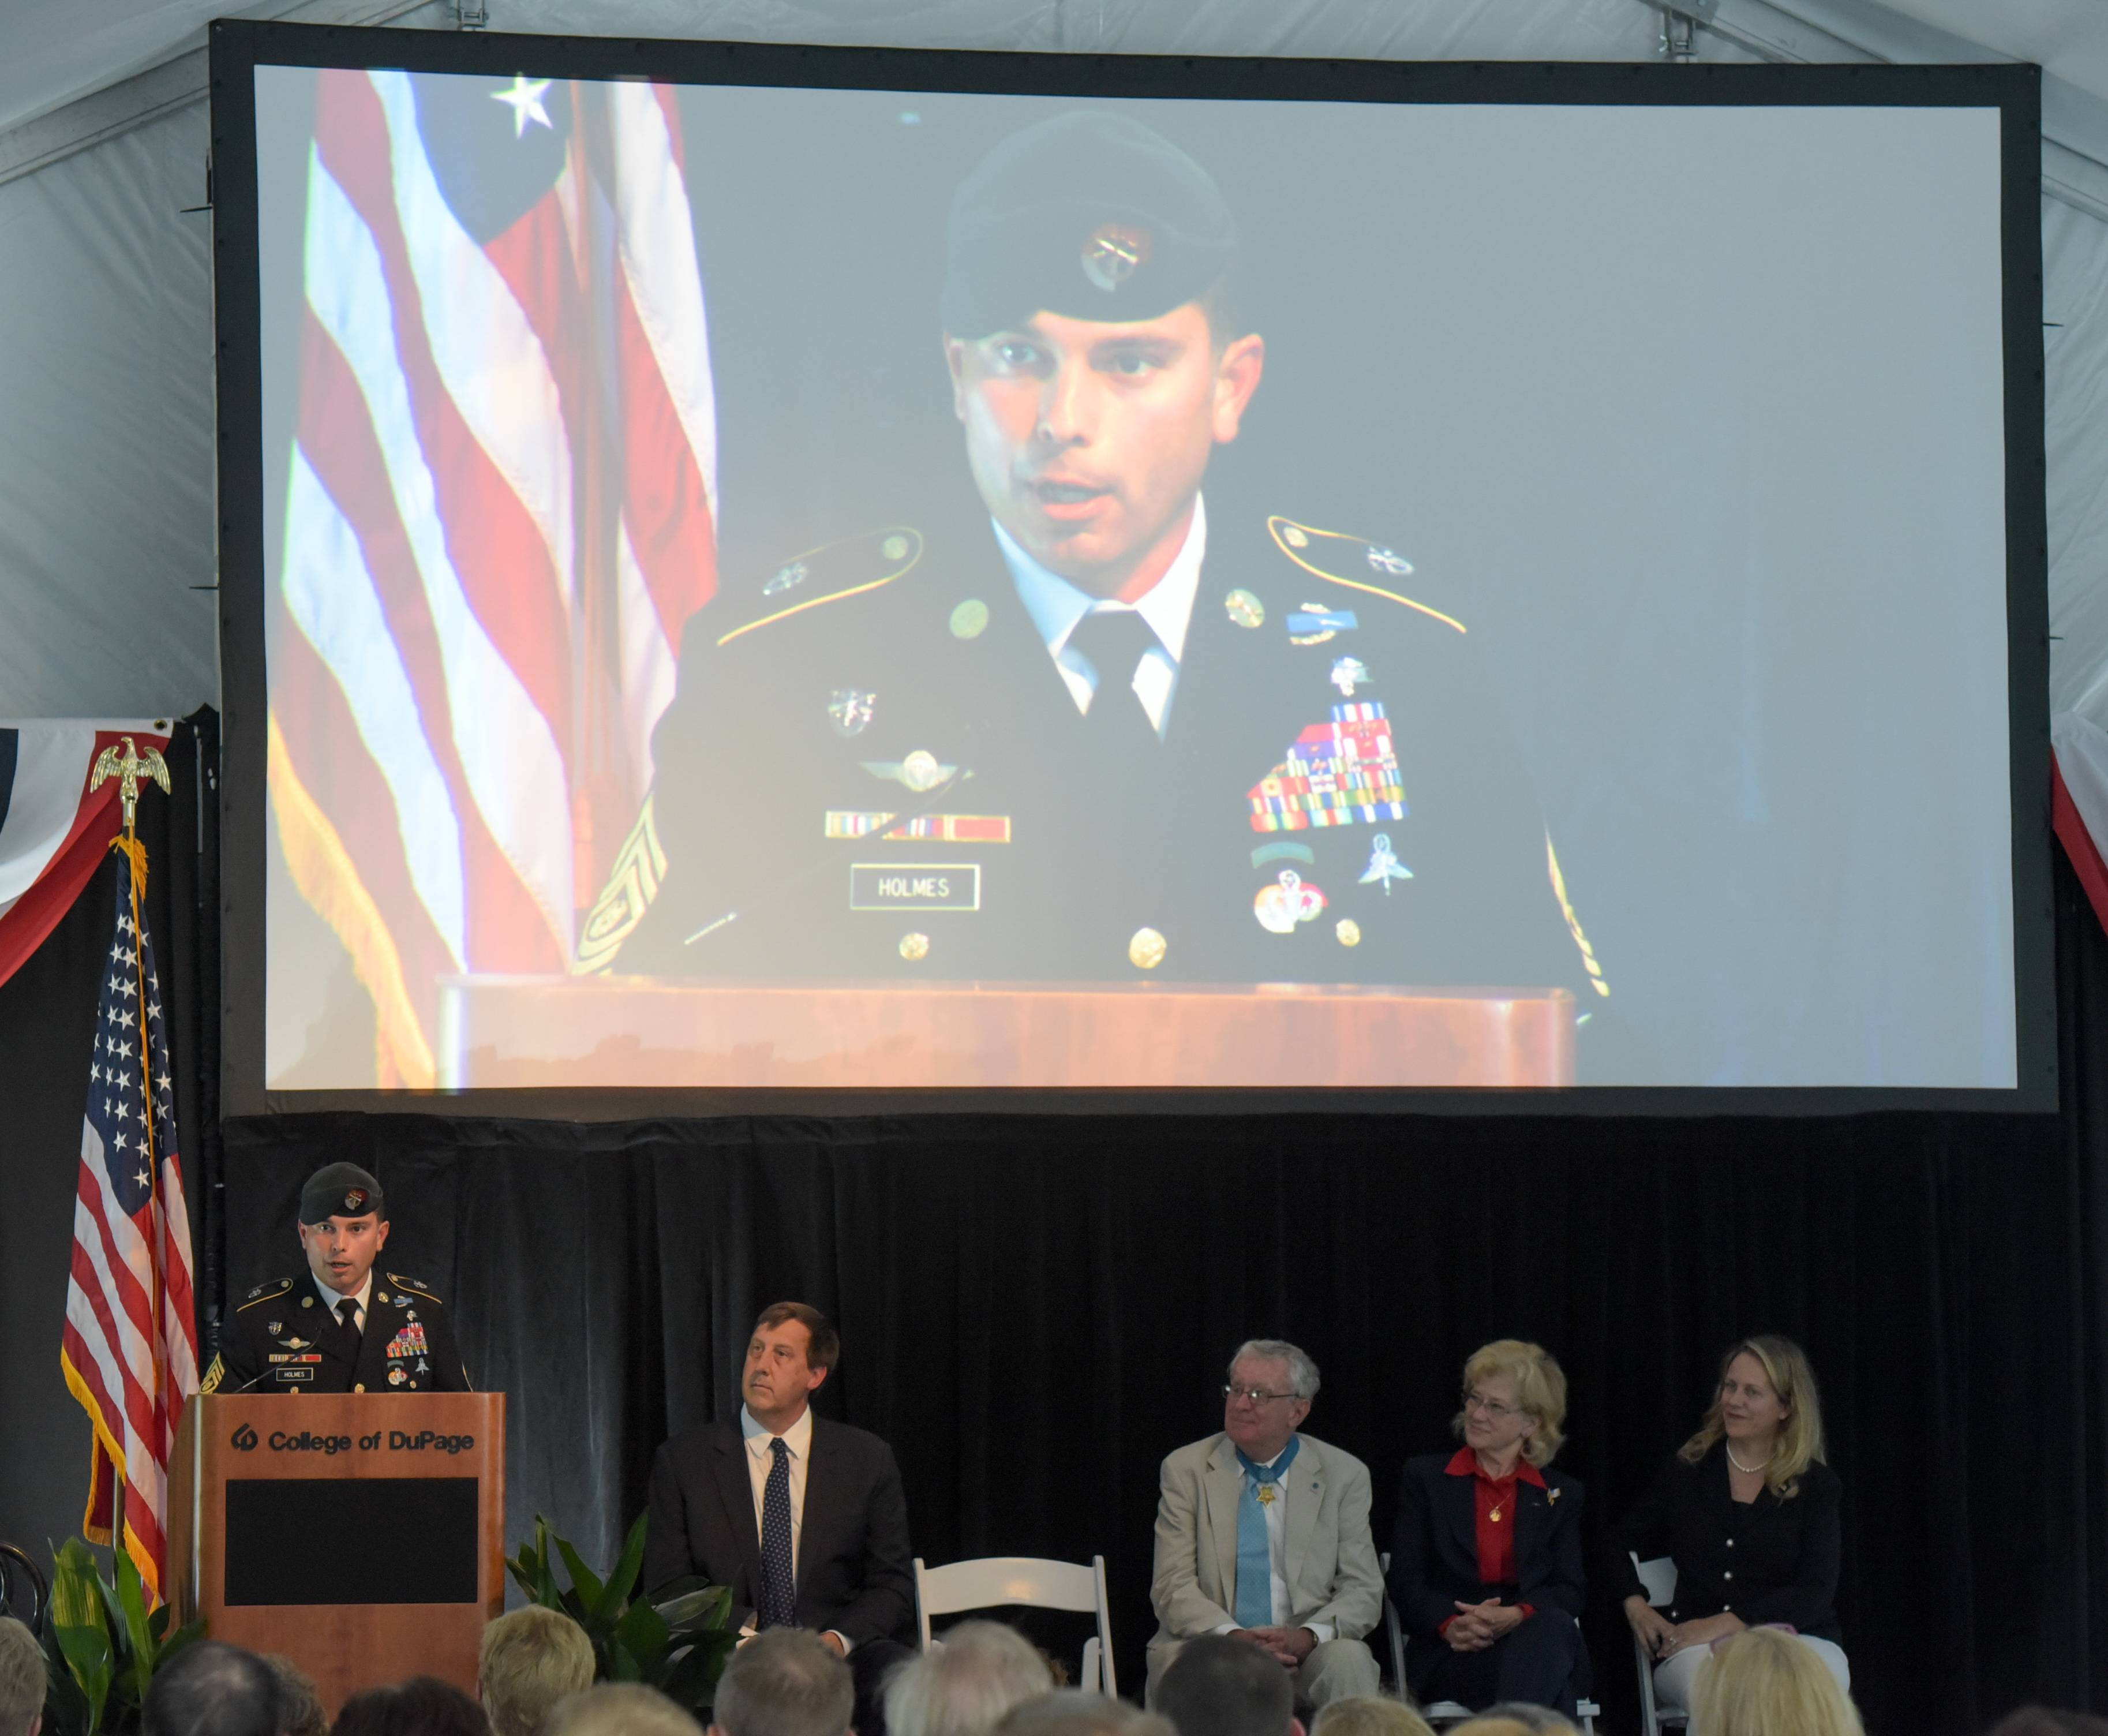 Command Sgt. Major Bruce Holmes of the U.S. Army 3rd Special Forces Group addresses the crowd at the College of DuPage.